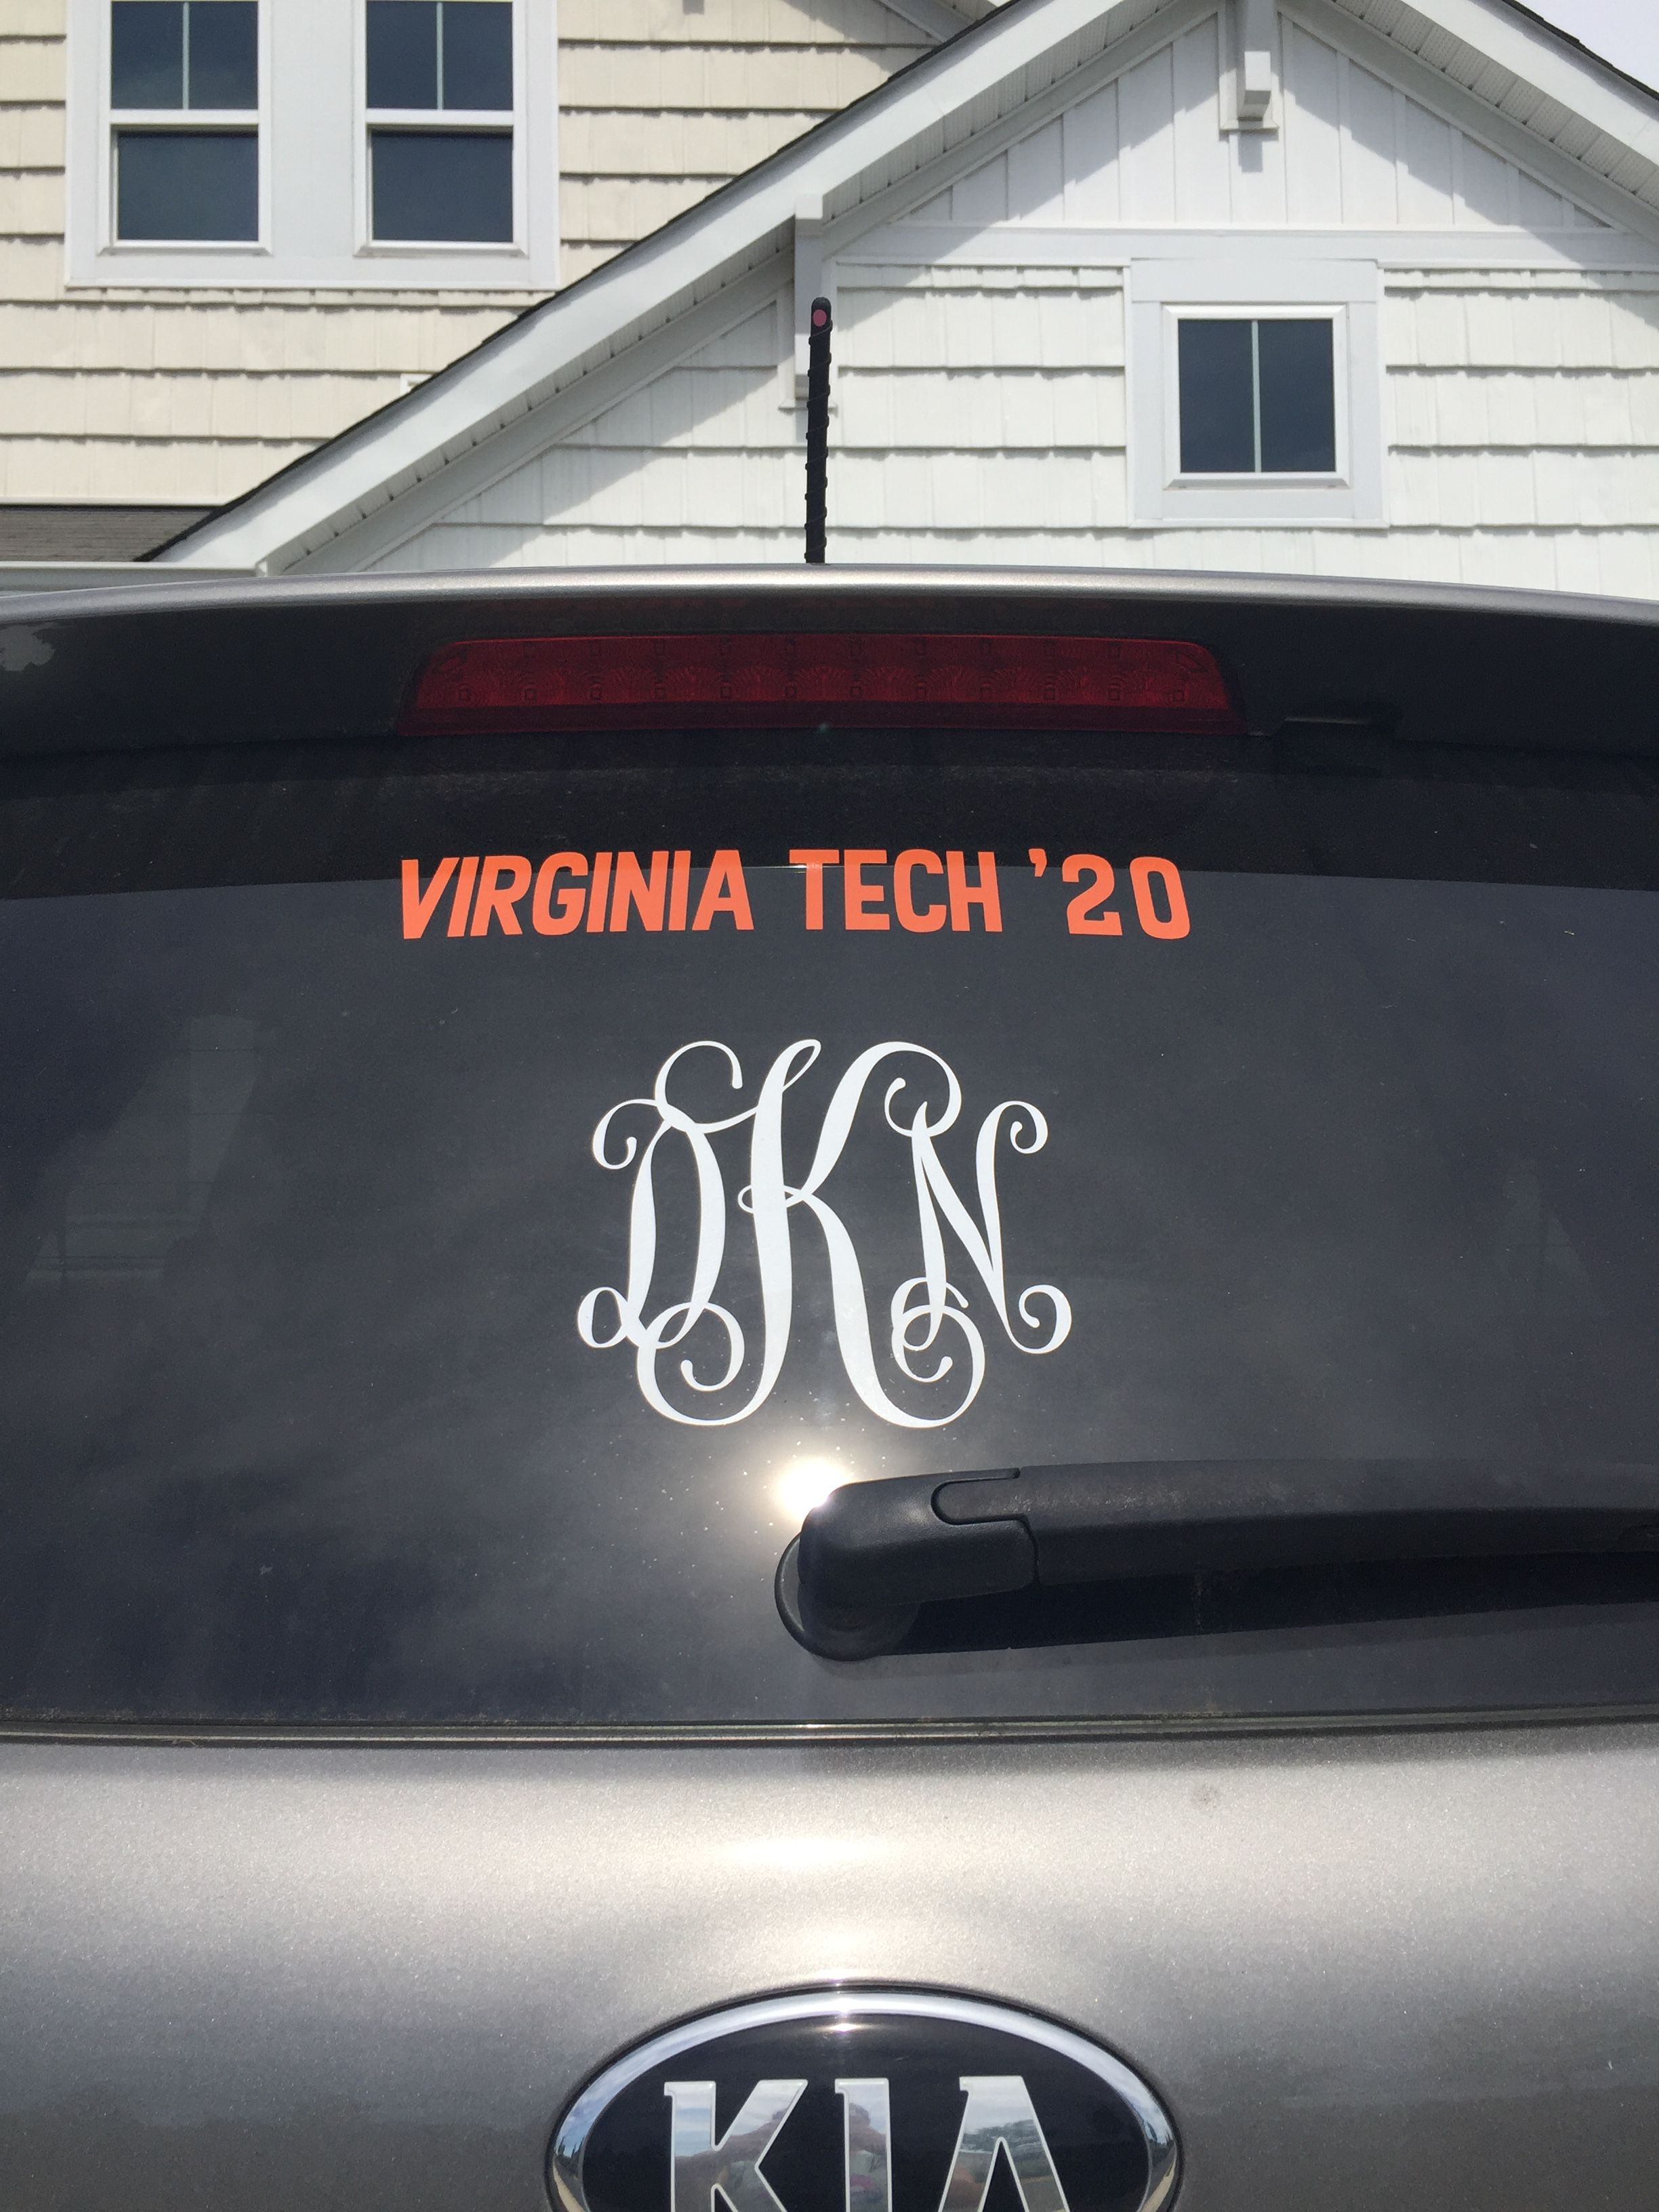 5 Inches By 5 Inches Script Vinyl Monogram Decal Car Etsy Monogram Vinyl Decal Monogram Decal Car Monogram Decal [ 3264 x 2448 Pixel ]